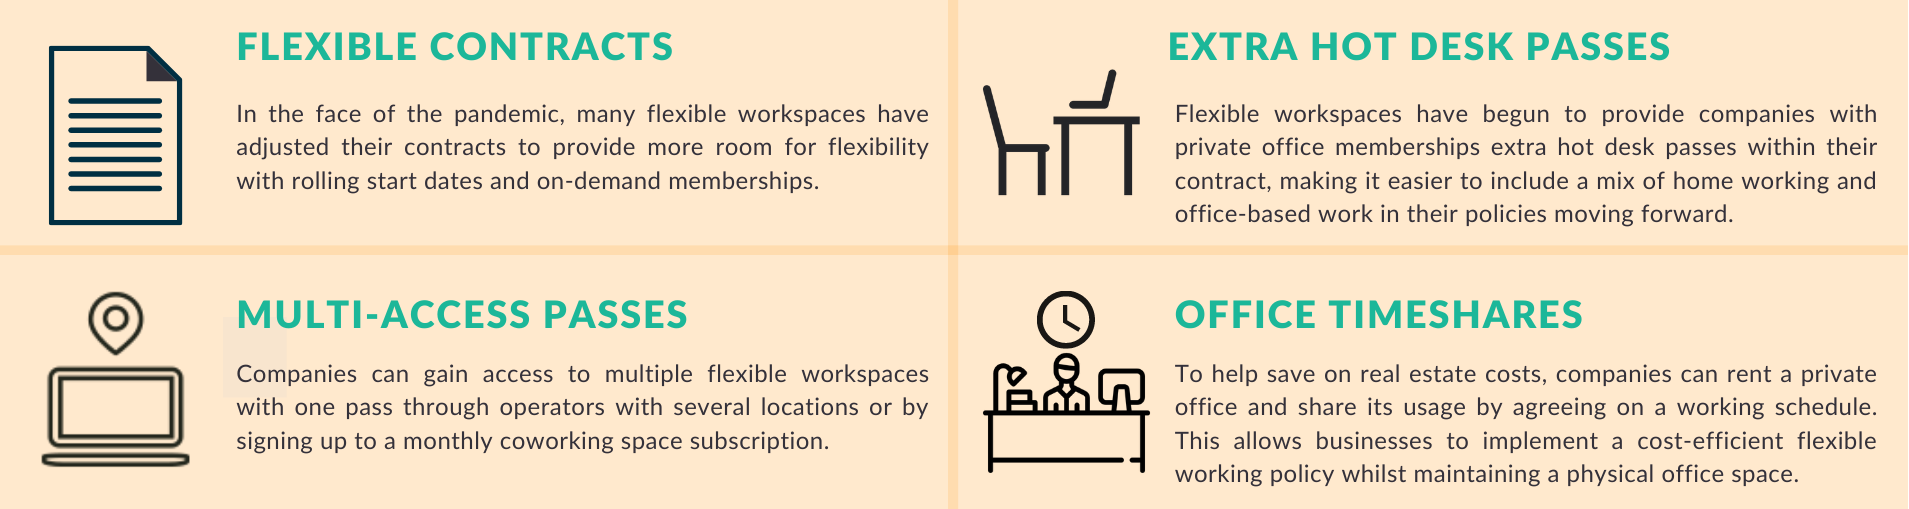 flyspaces-infographic-office-space-trends-covid19